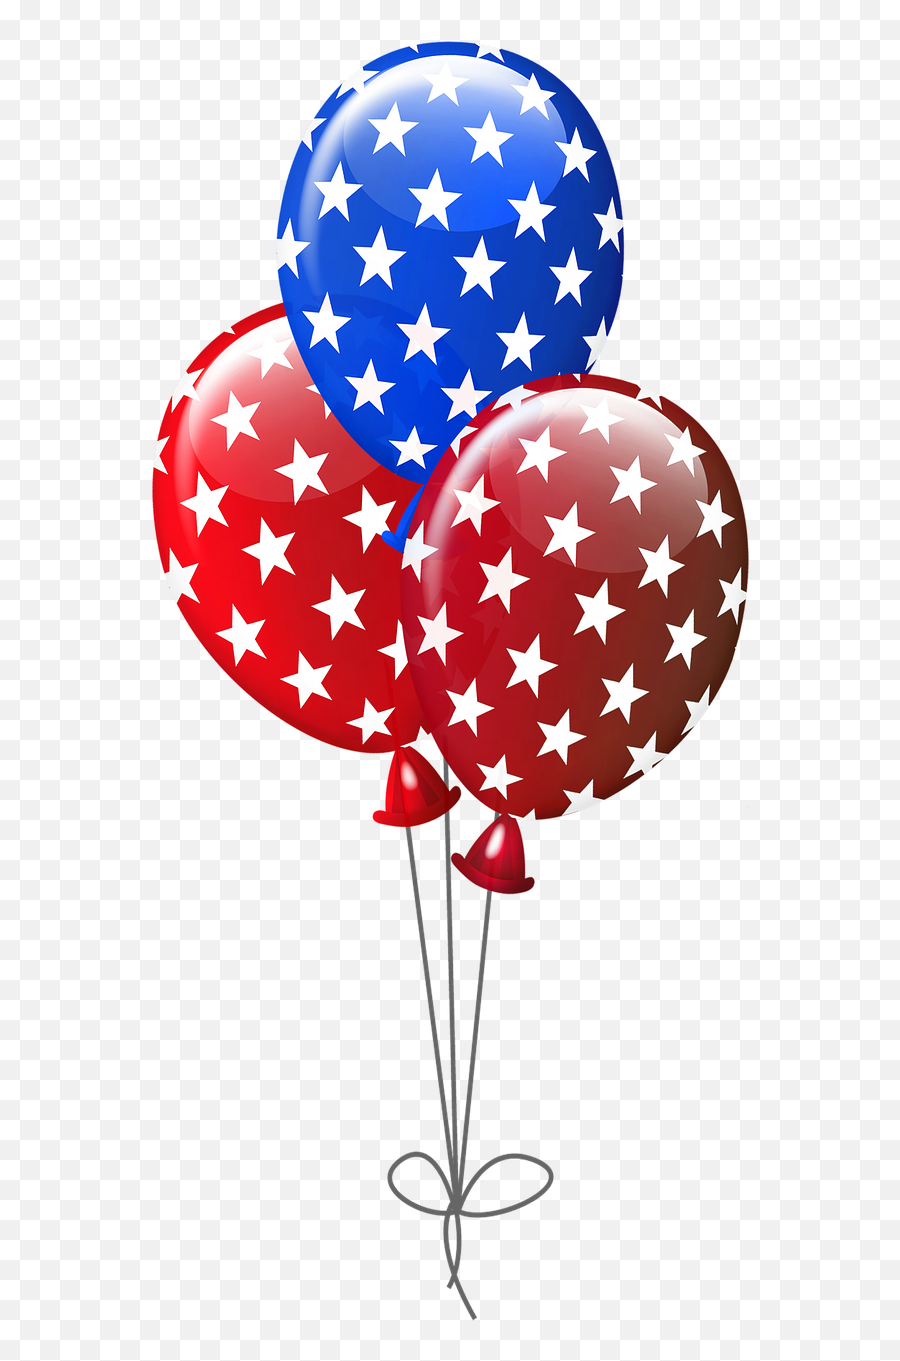 Download Free Photo Of Balloons Blue - Red White And Blue Balloons Clipart Emoji